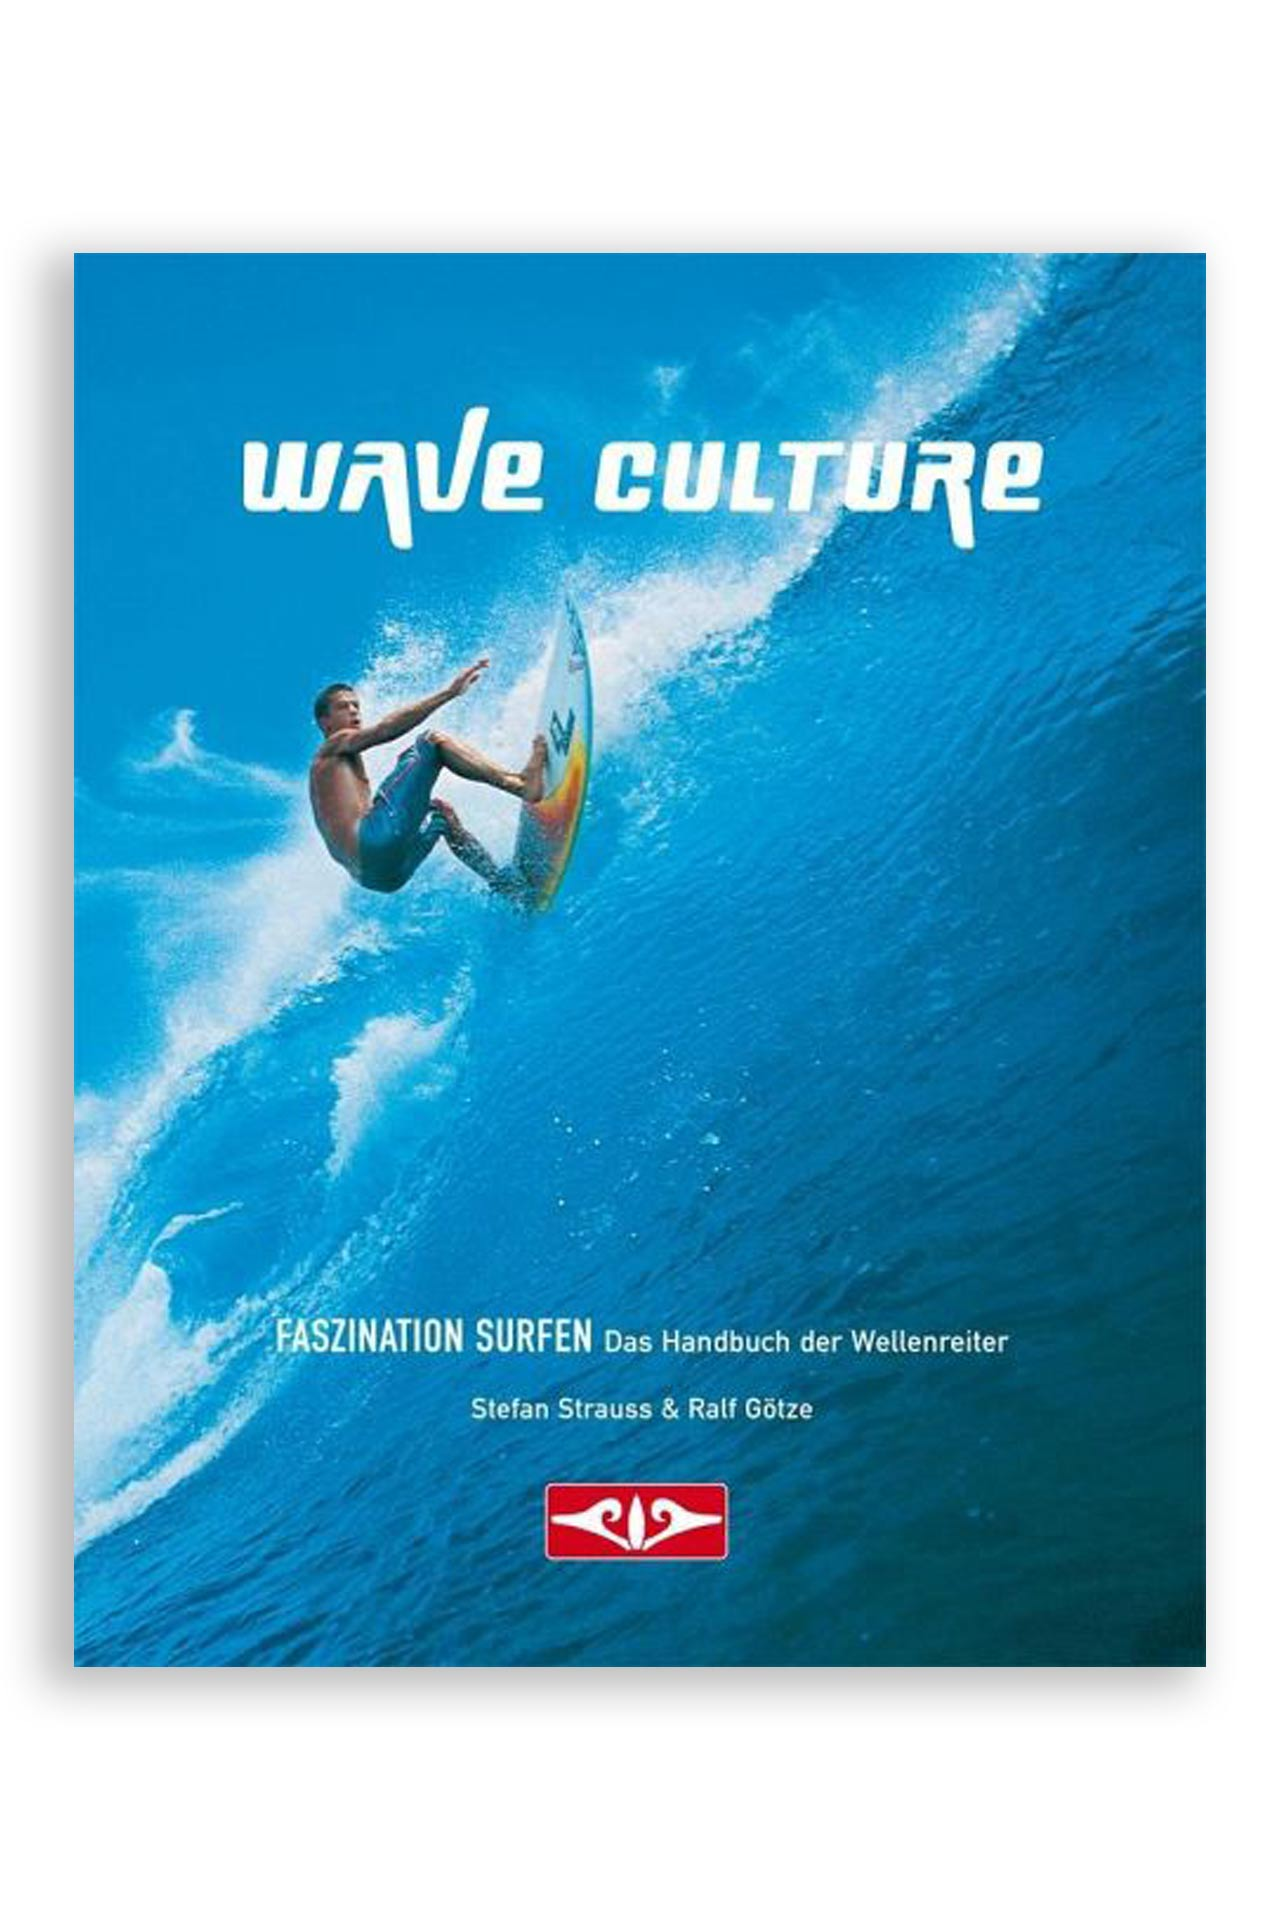 Faszination Surfen Waveculture